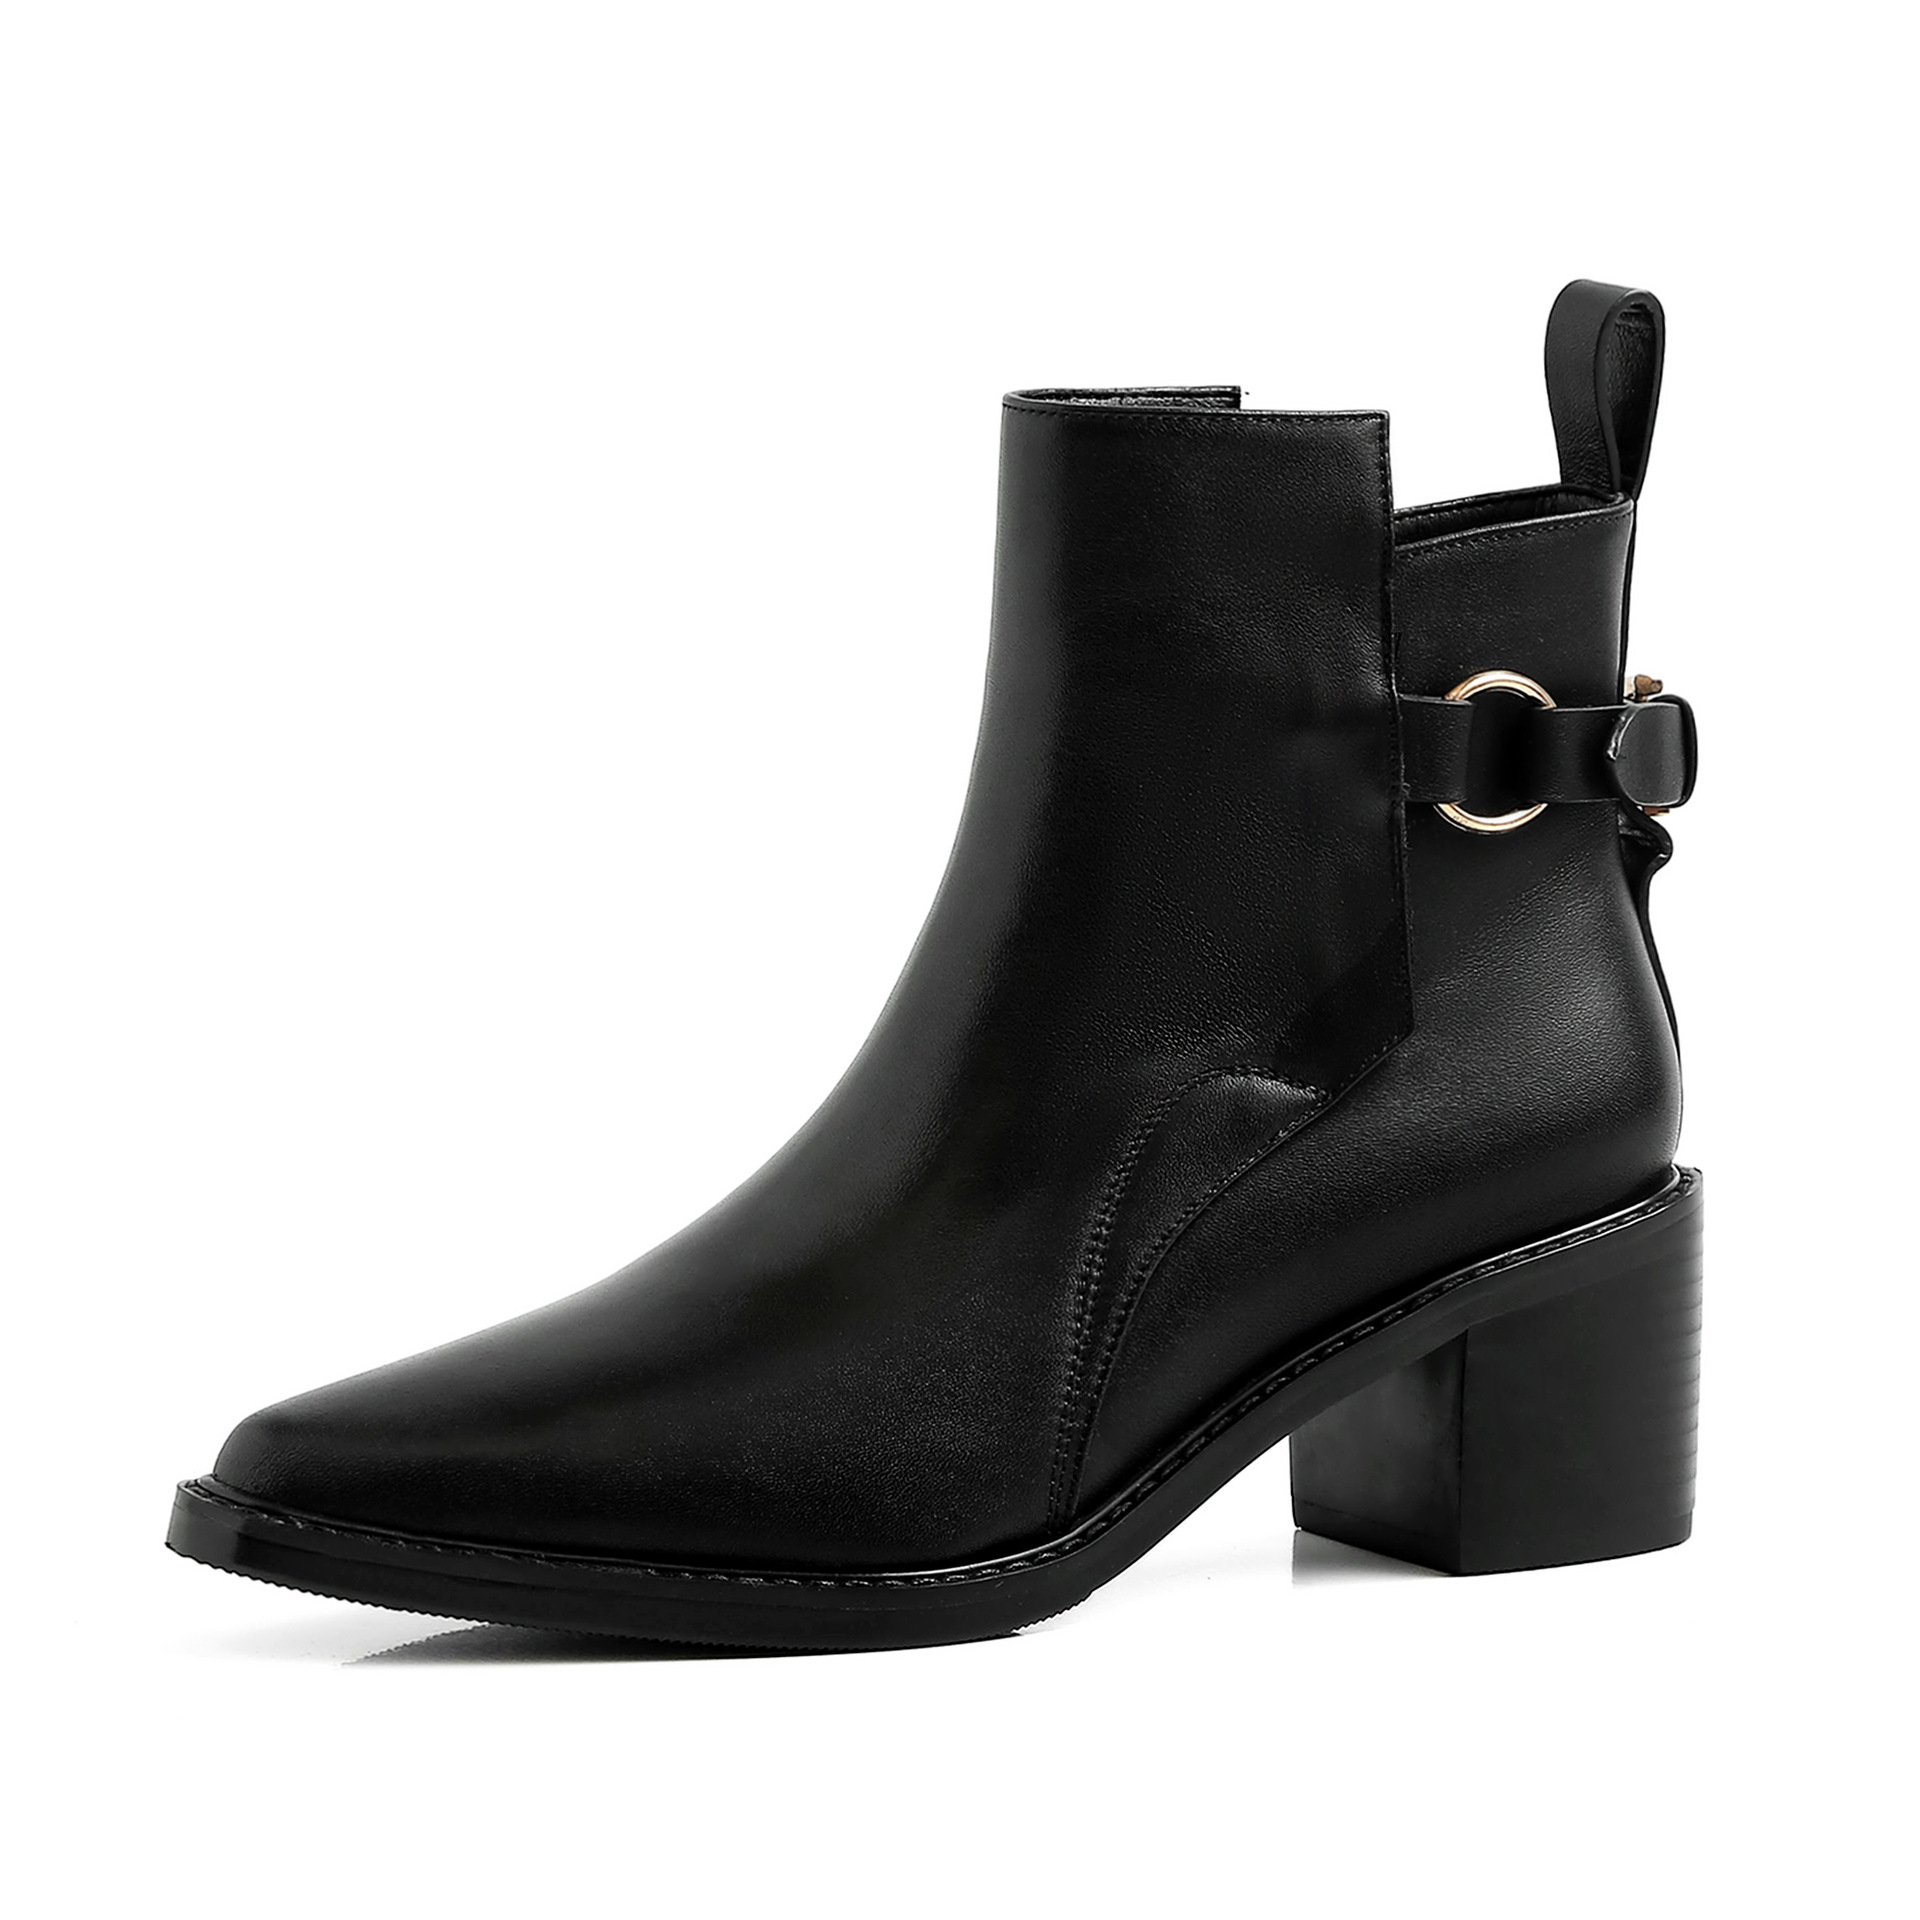 6CM High Low Heel Ankle Boots For Woman Vintage Boots For Ladies Botte Plate Femme Botas Mujer Marrones Shoe Bootie Woman